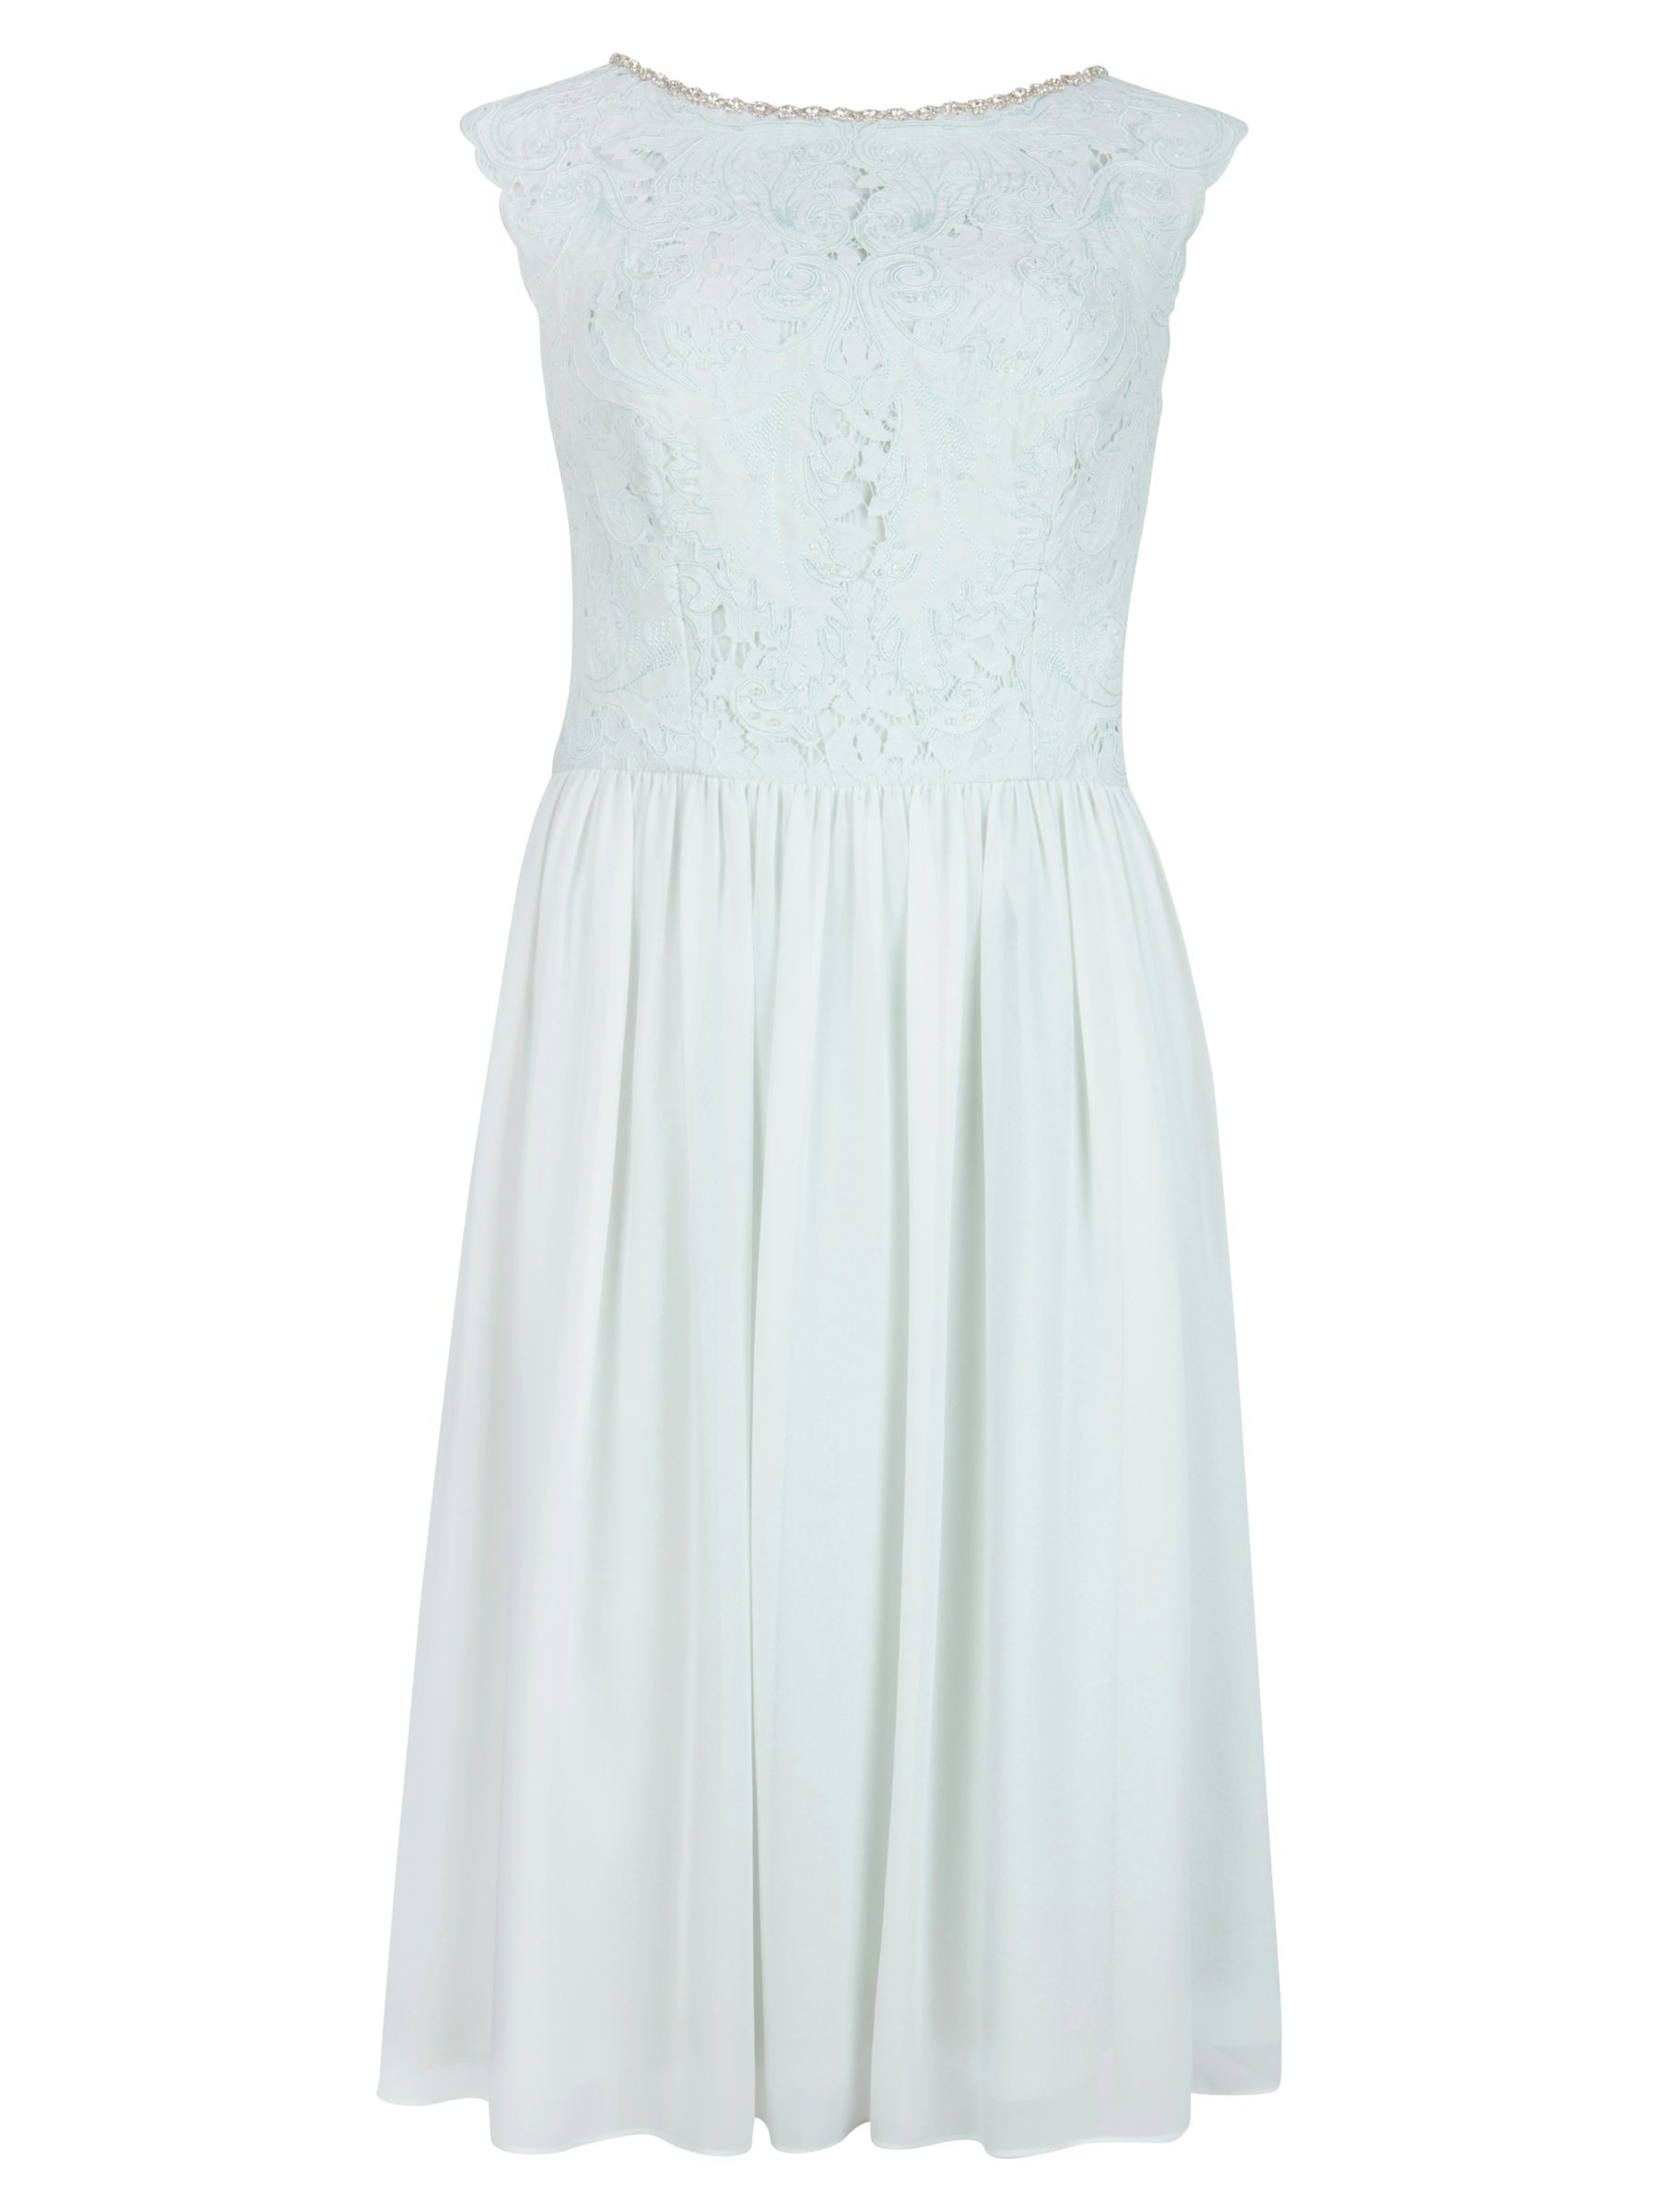 ted baker embroidered lace bodice dress mint, ted, baker, embroidered, lace, bodice, dress, mint, ted baker, 5|4|1|3|2|0, edition magazine, ss15 trend pastels, women, womens dresses, gifts, wedding, wedding clothing, adult bridesmaids, fashion magazine, womenswear, men, brands l-z, 1873296